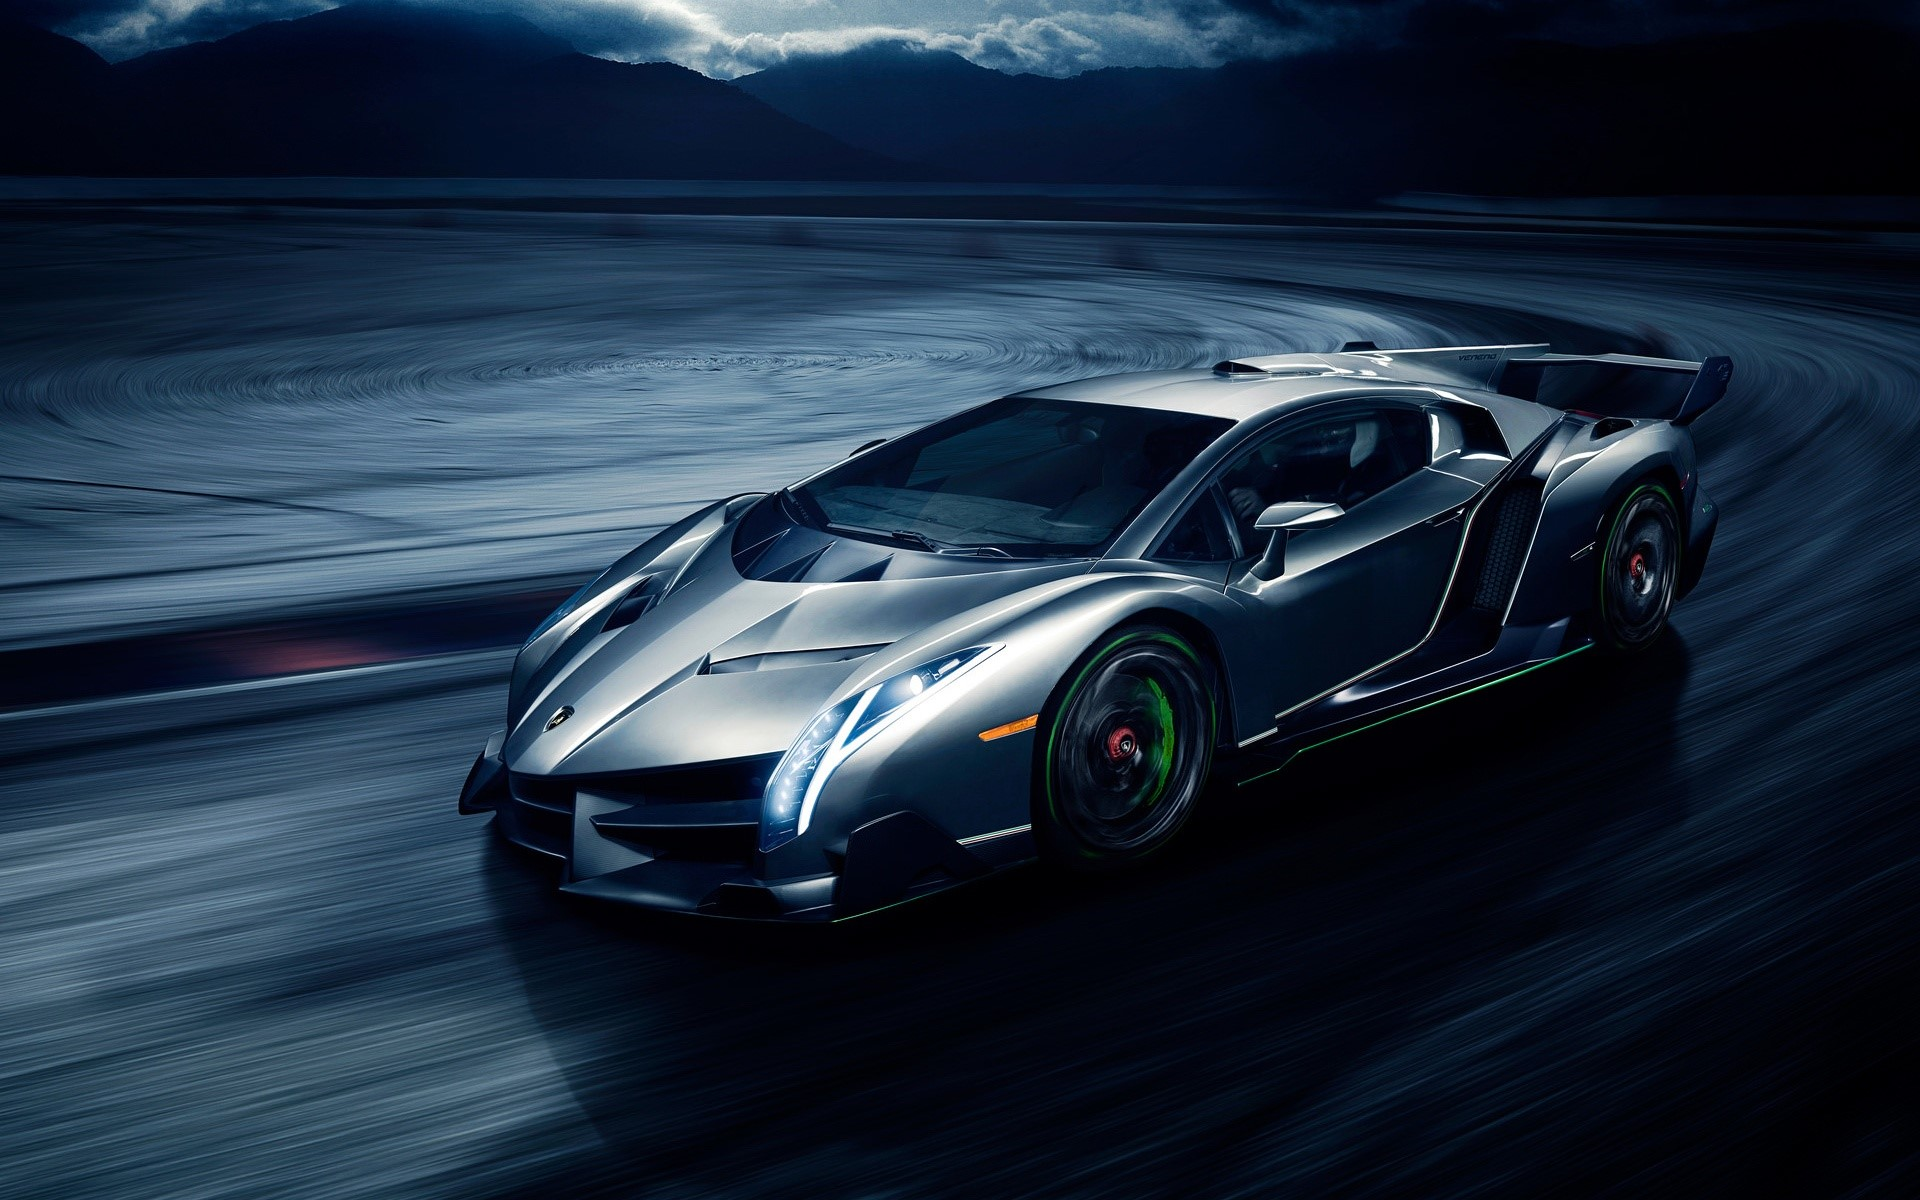 Wallpaper Lamborghini Veneno Supercar Images